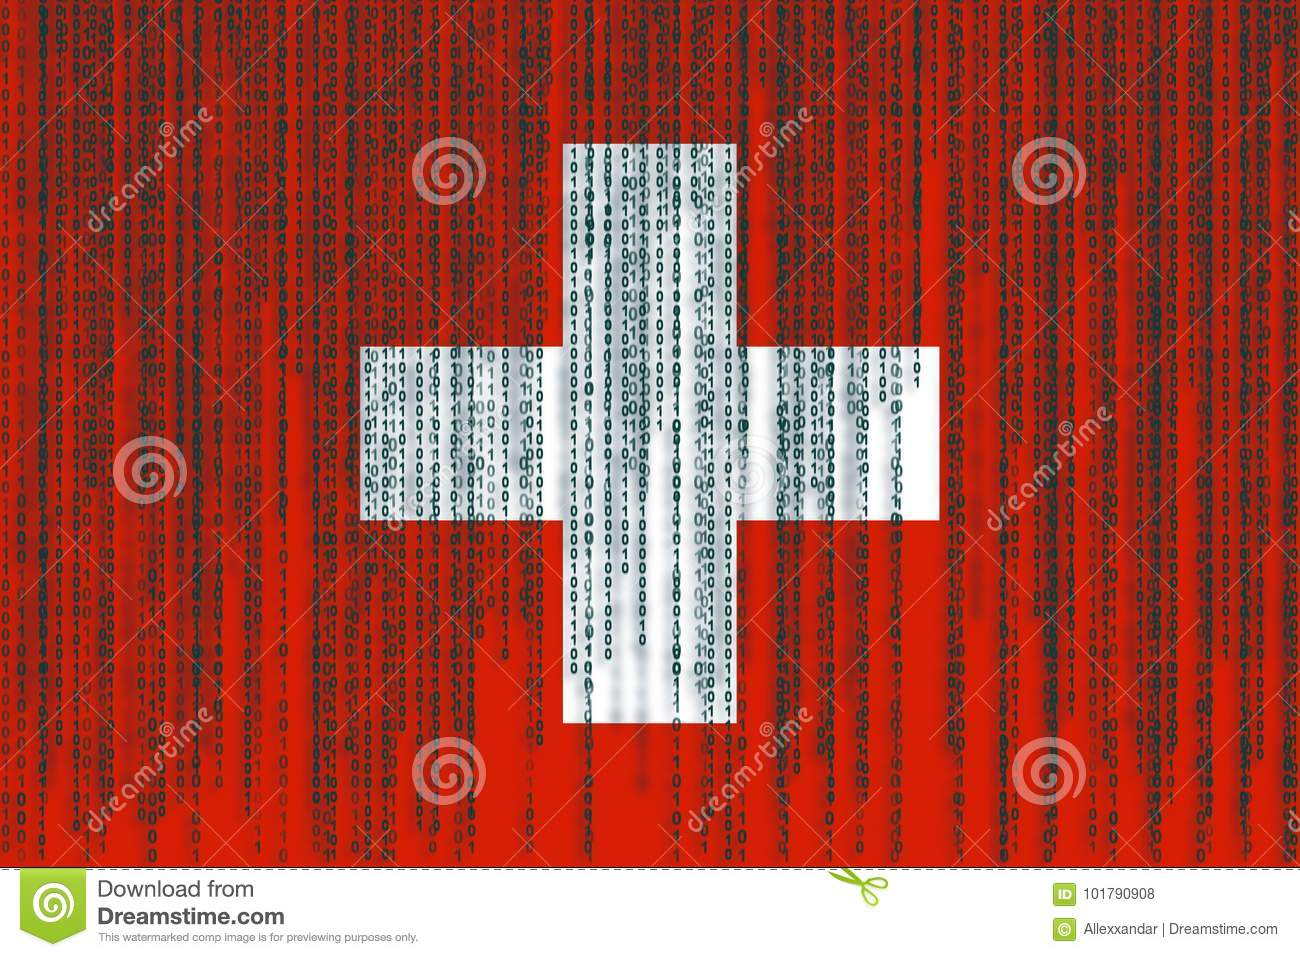 Data Protection Switzerland Flag. Swiss Flag With Binary Code. Stock Illustration - Illustration of bright. science: 101790908